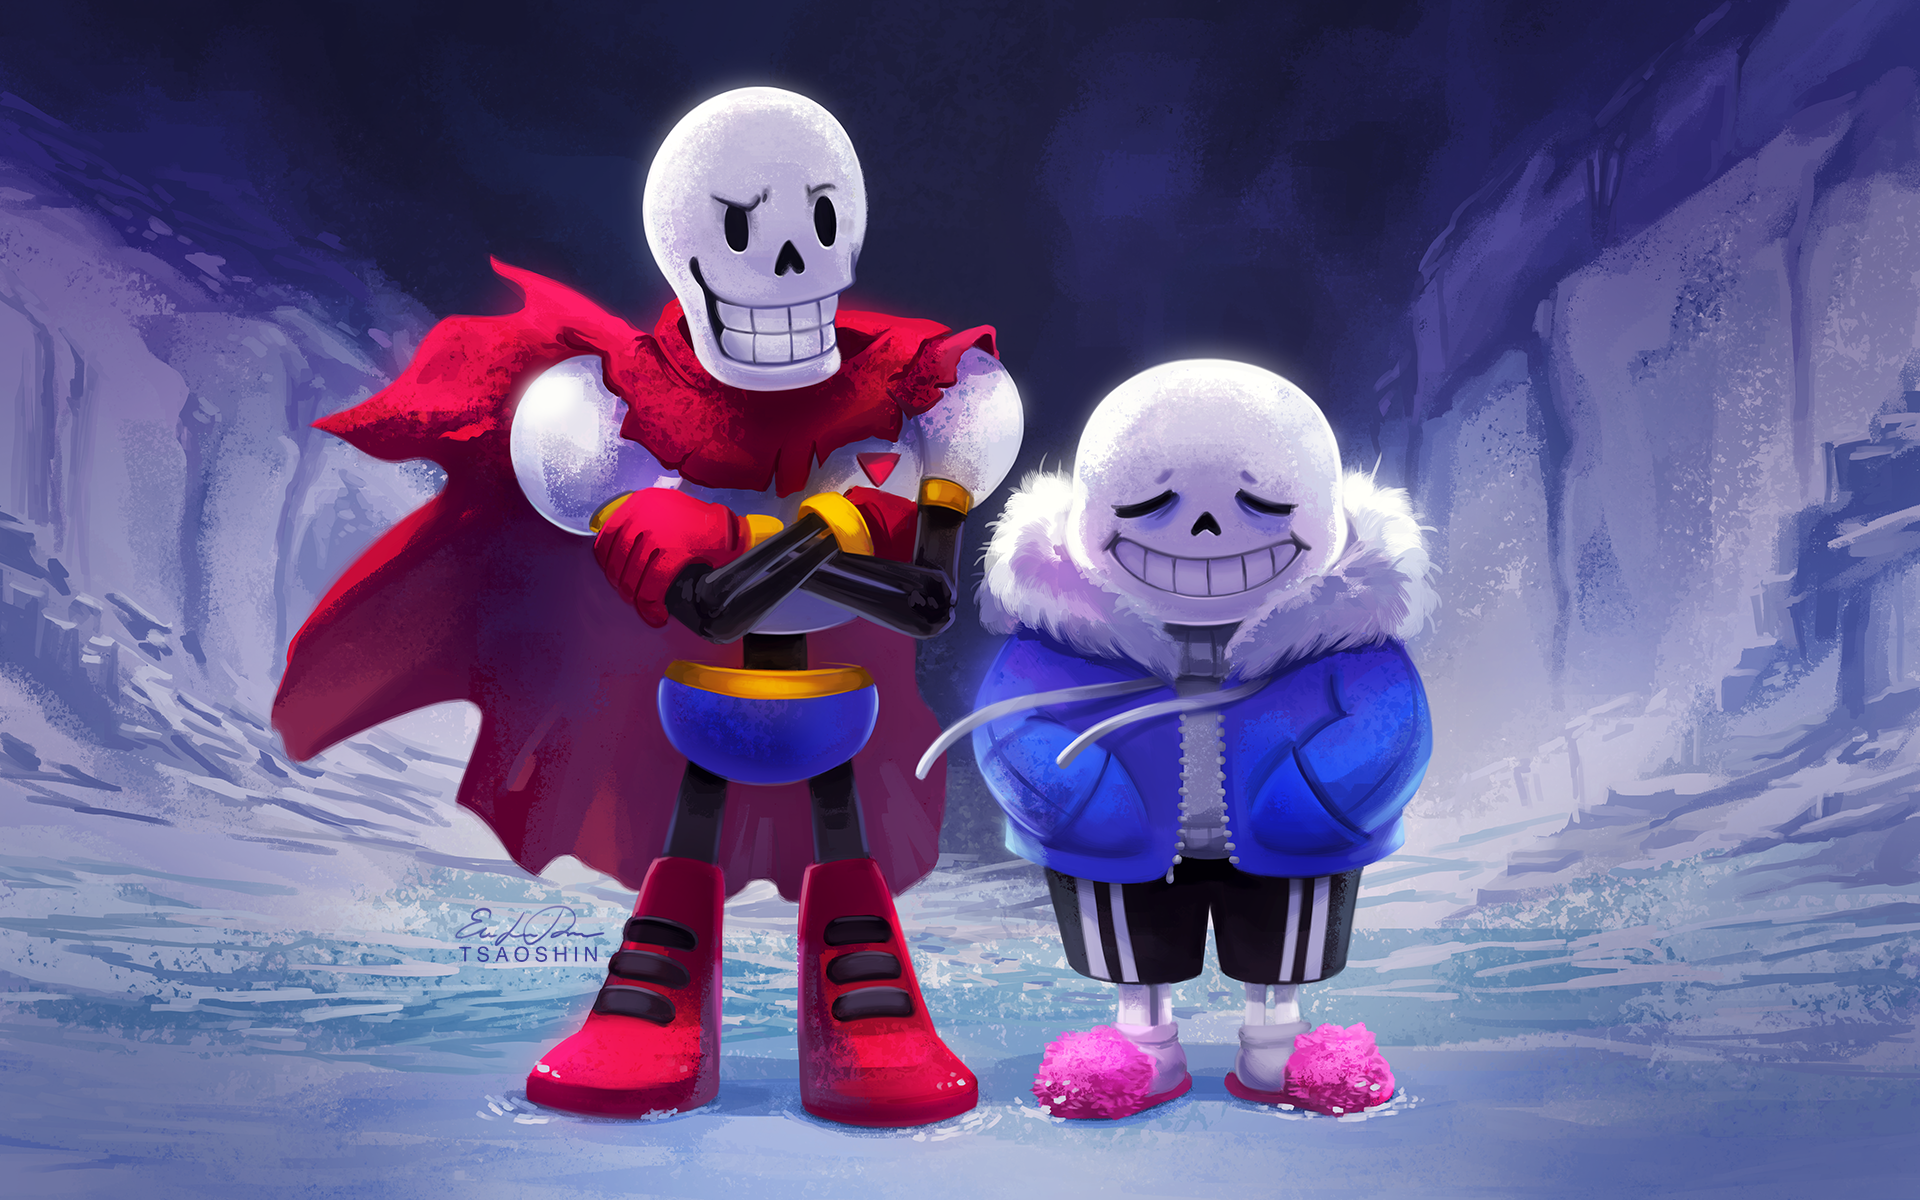 Simple Wallpaper High Quality Undertale - thumb-1920-709976  Trends_283681.png